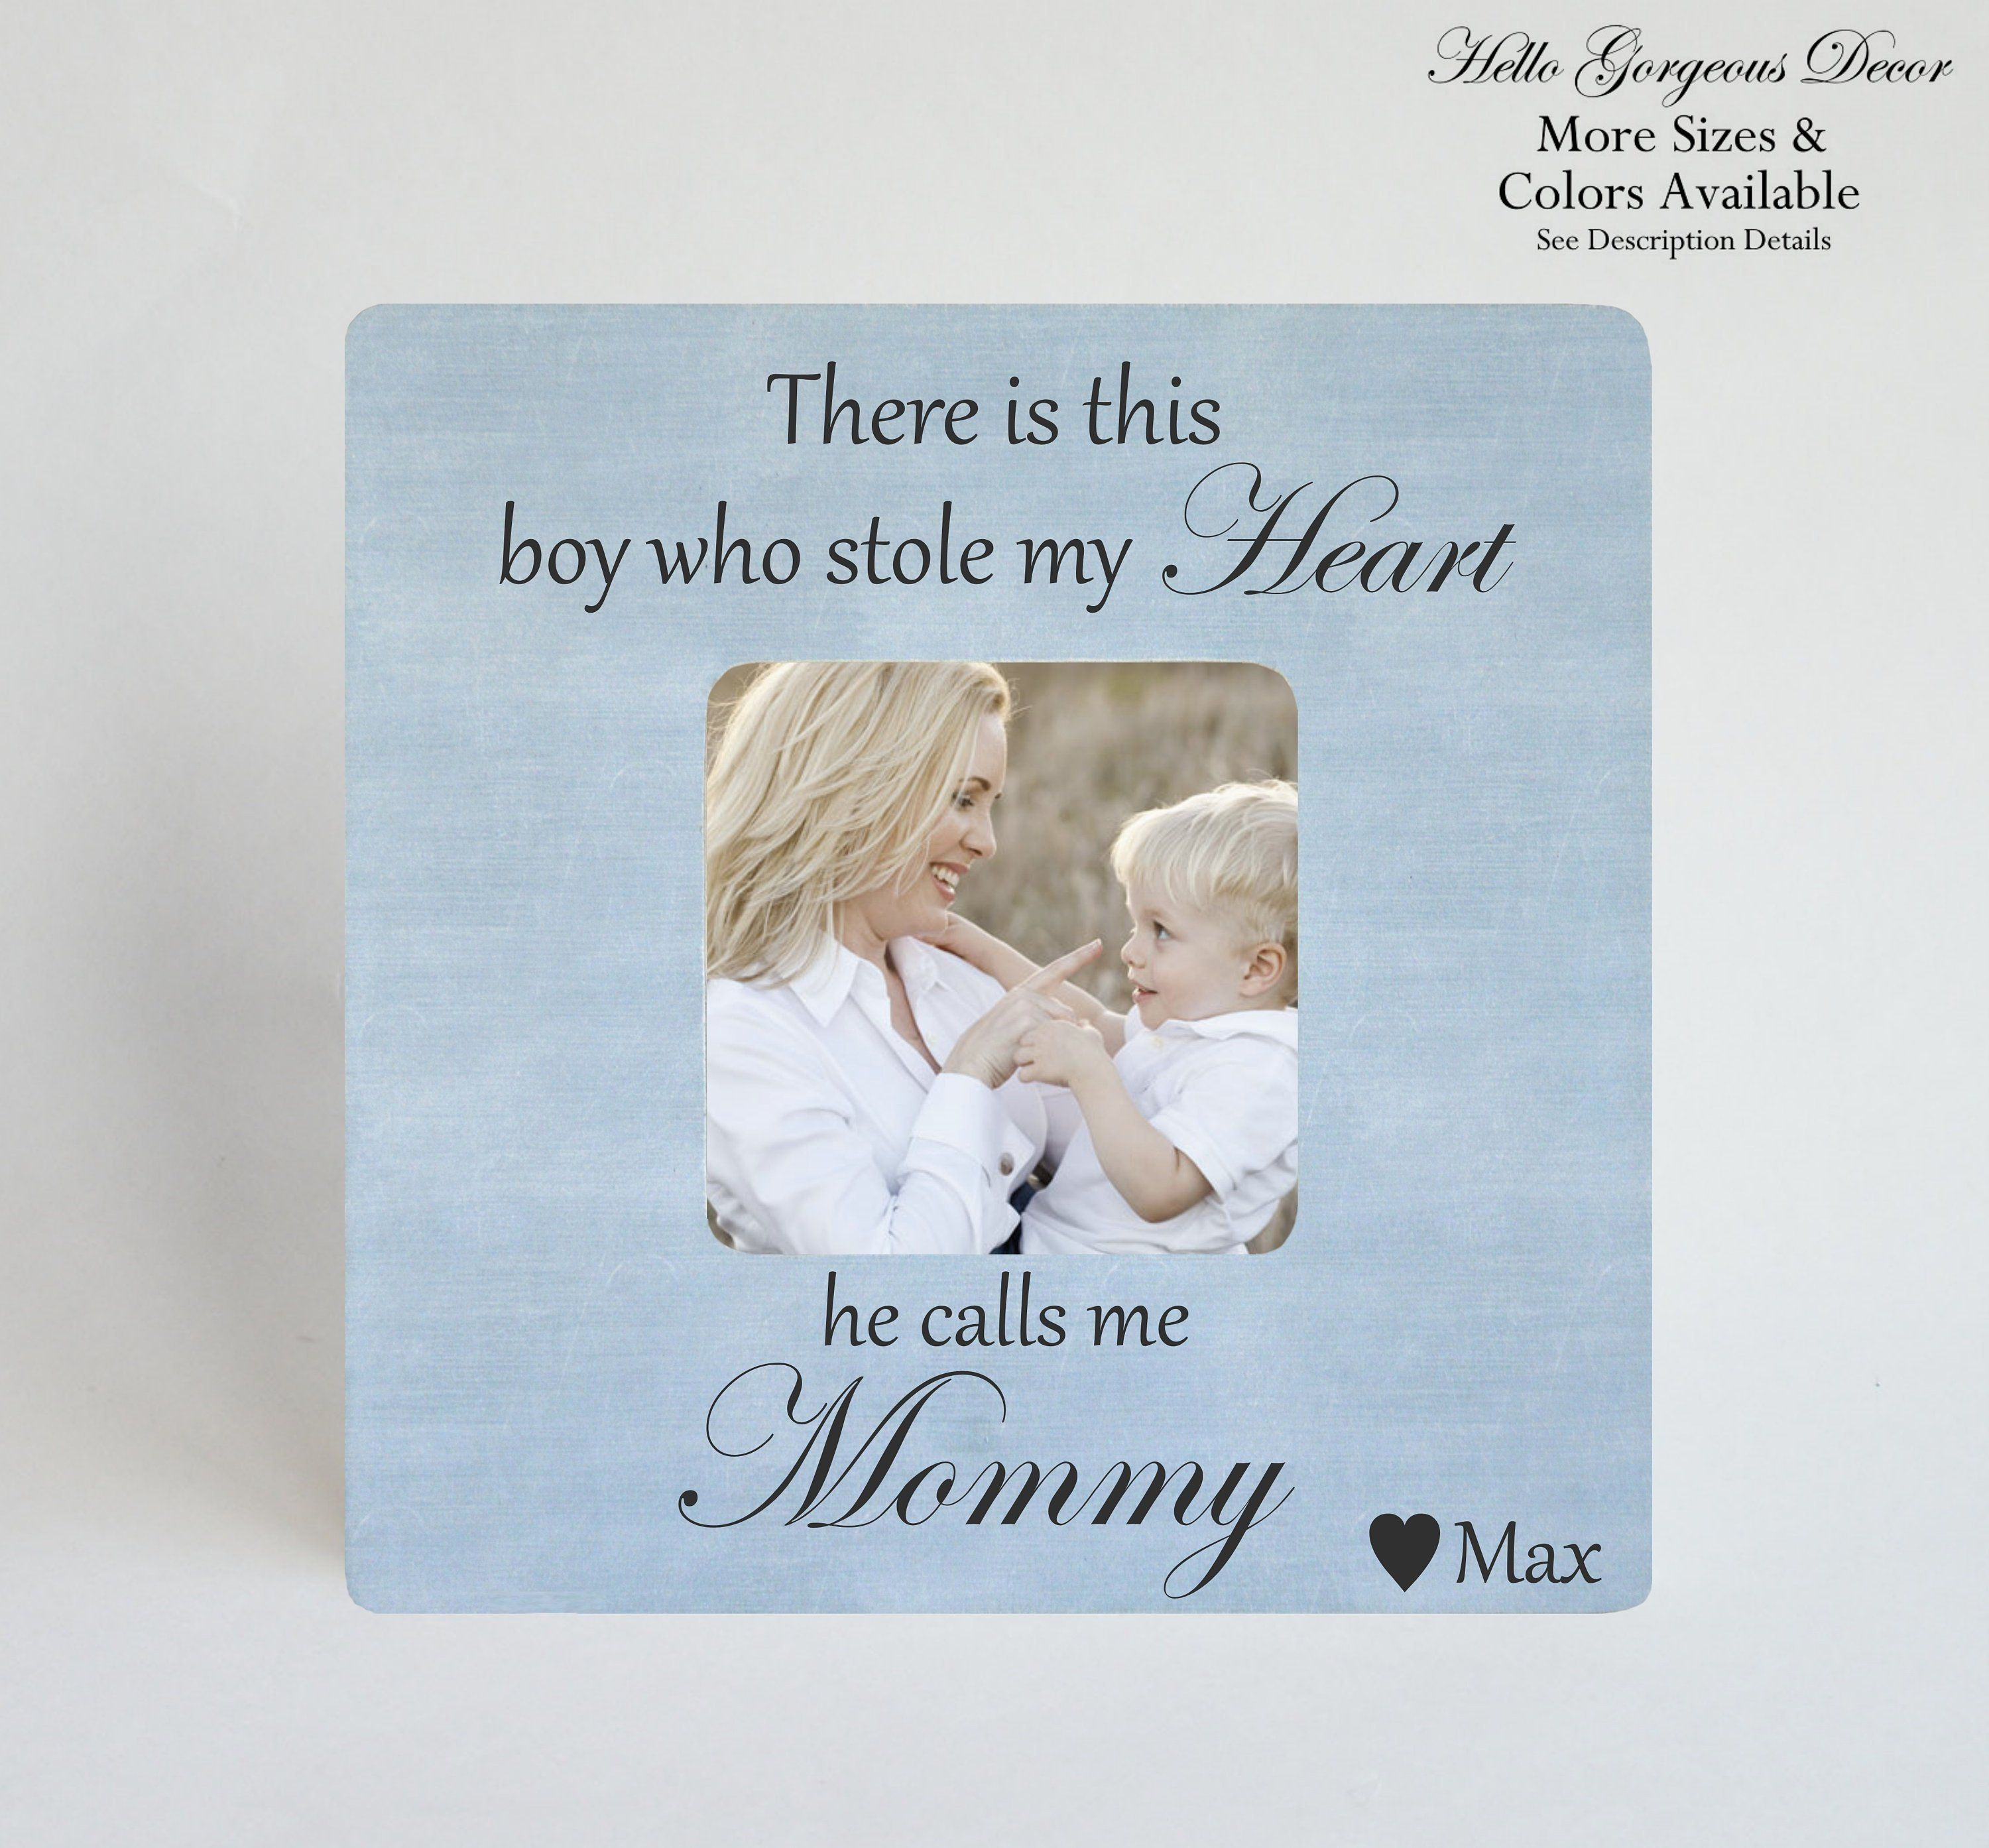 Mom Mother Gift For Mother S Day Personalized Mom Of Boy Gift Mother Son Frame There Is This Boy Who Stole My Heart He Calls Me Mommy Trendy Baby Gifts Baby Boy